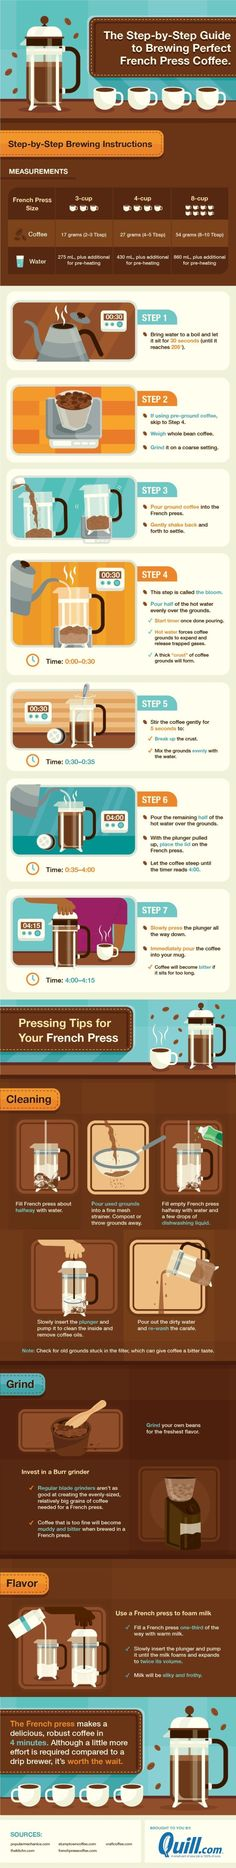 How to brew perfect #Frenchpress #coffee